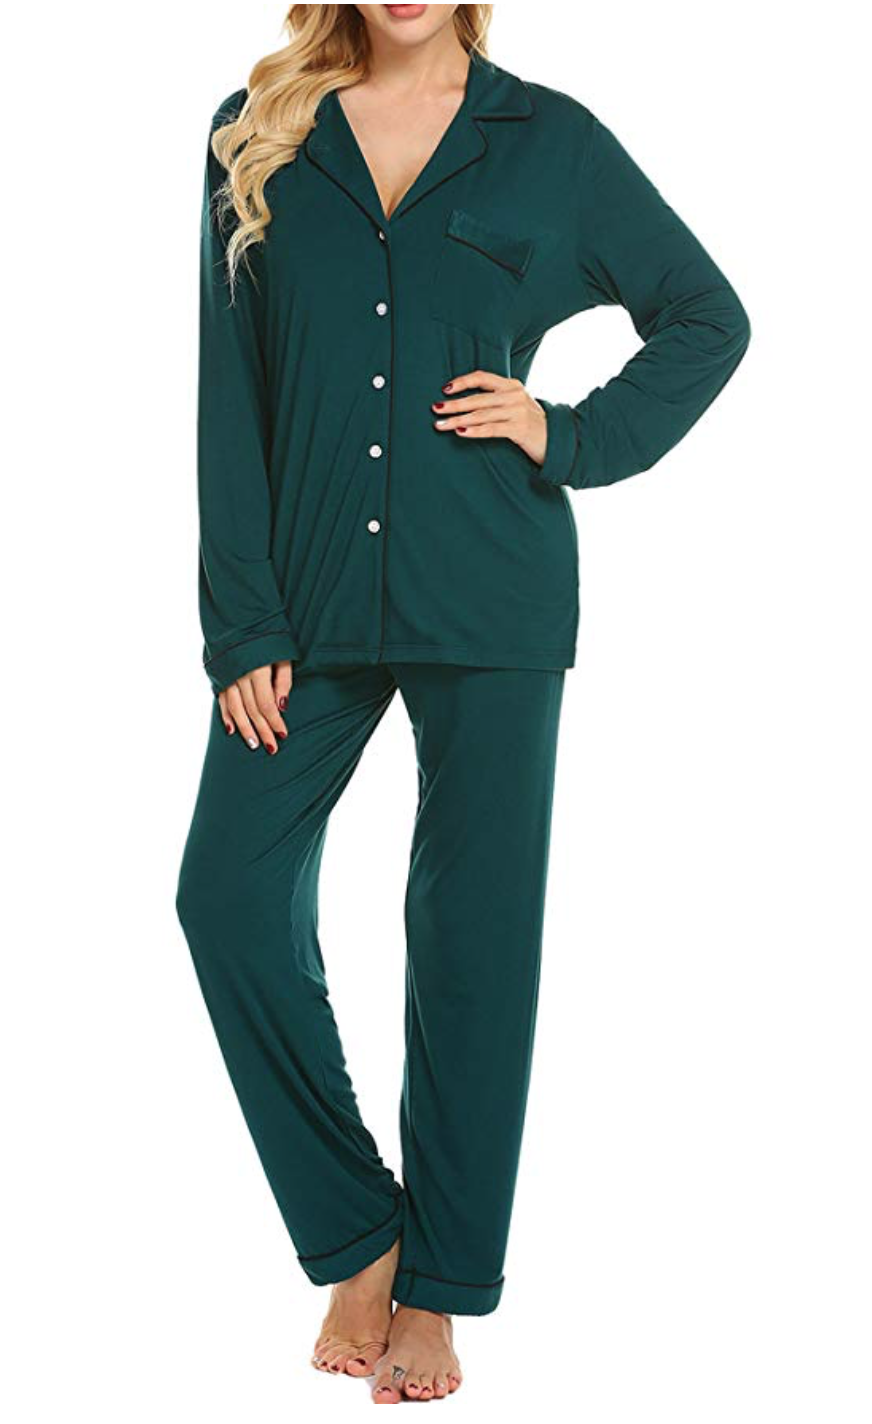 My favorite pajamas of all time - They are so soft and comfy. I have worn them at least once weekly for almost a year and a half and they're still holding up. I like to wear them with a tank underneath. (Not an announcement. I just like the length for layering)Pro tip: buy PJs in a color that complements your skin tone. For someone pale like me, jewel tones work. Mine are in purple, which doesn't seem to be available at the moment so go with solid green instead.